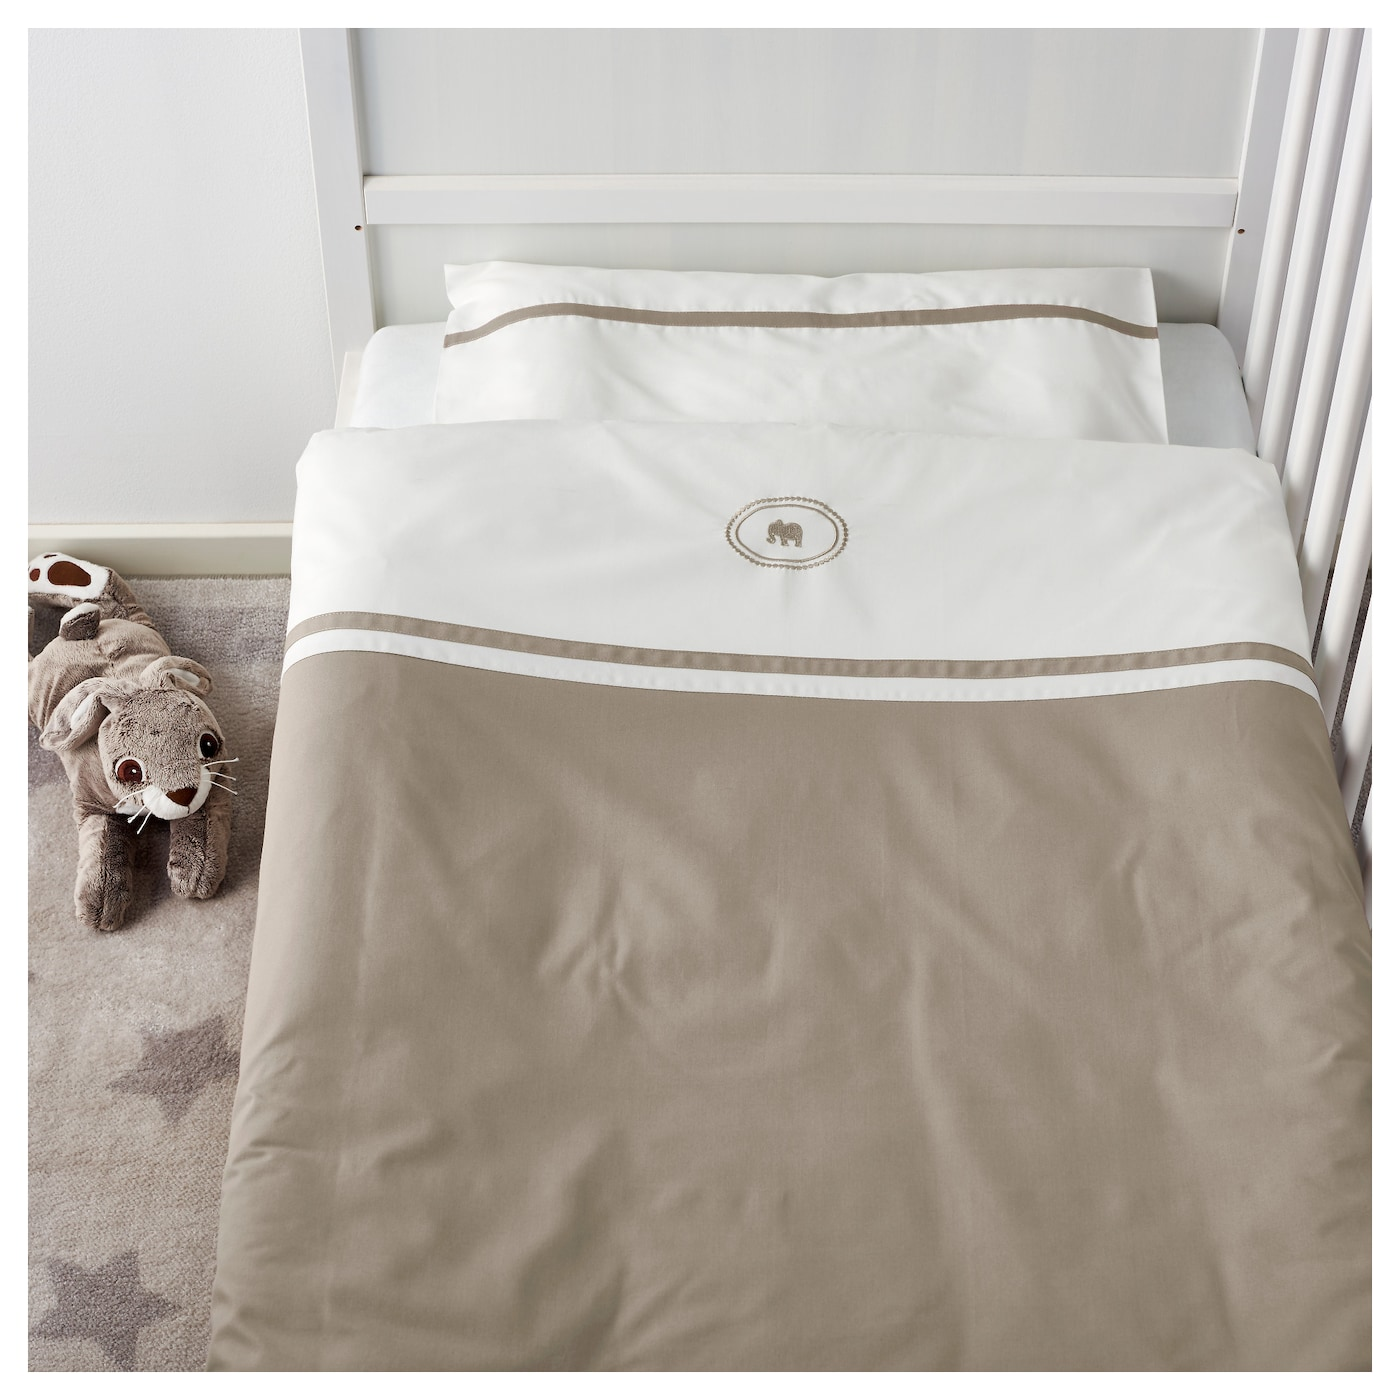 IKEA CHARMTROLL quilt cover/pillowcase for cot